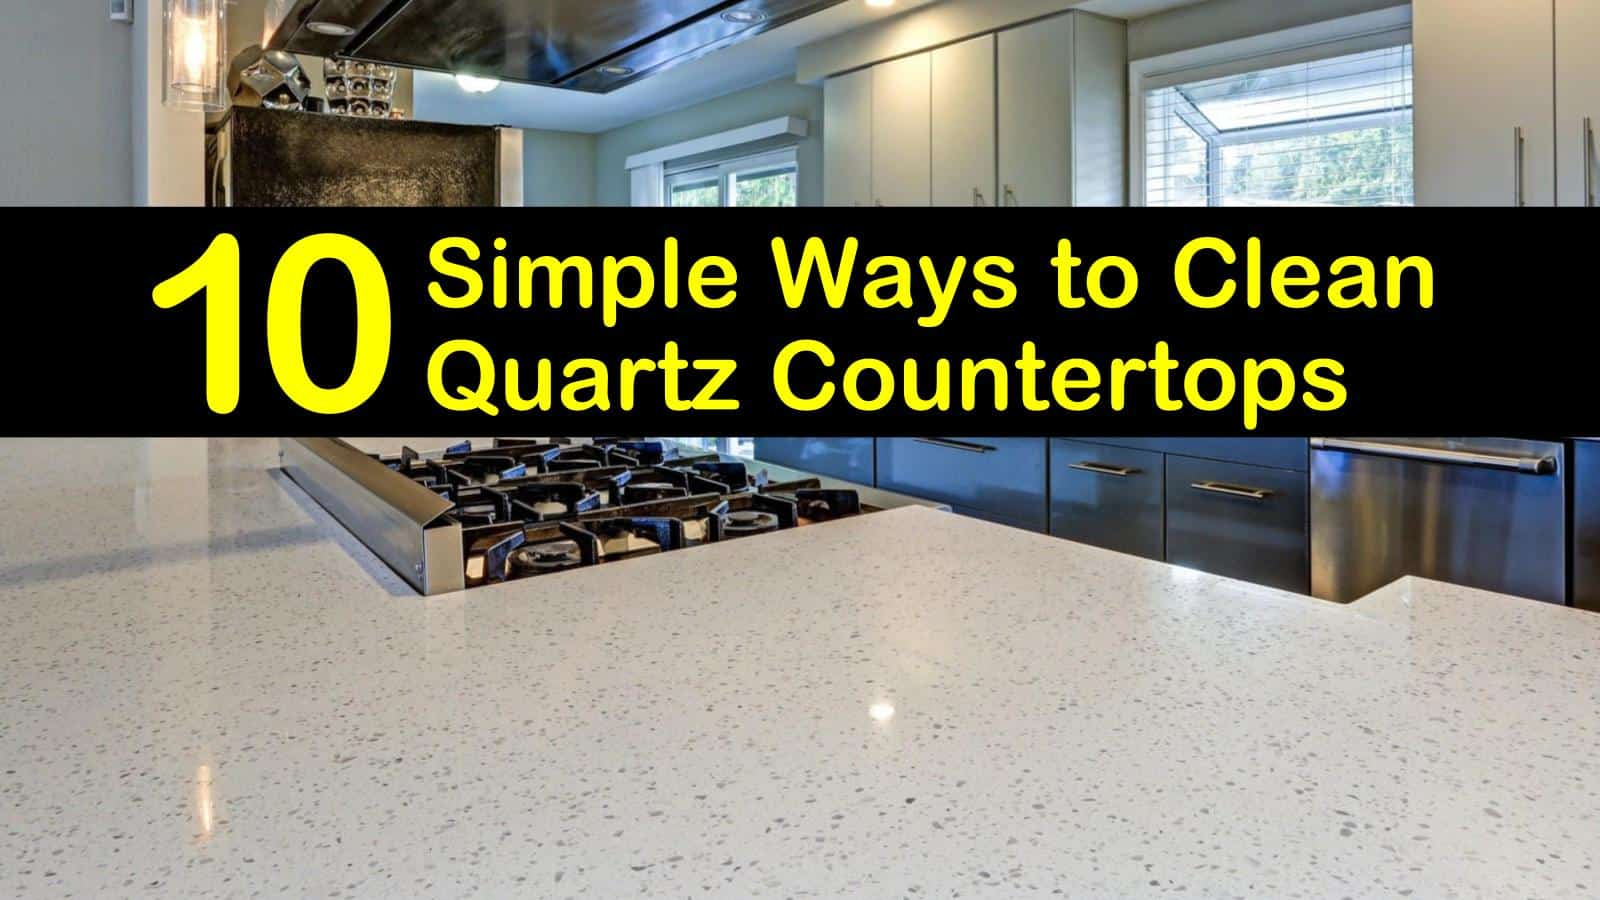 10 Simple Ways To Clean Quartz Countertops